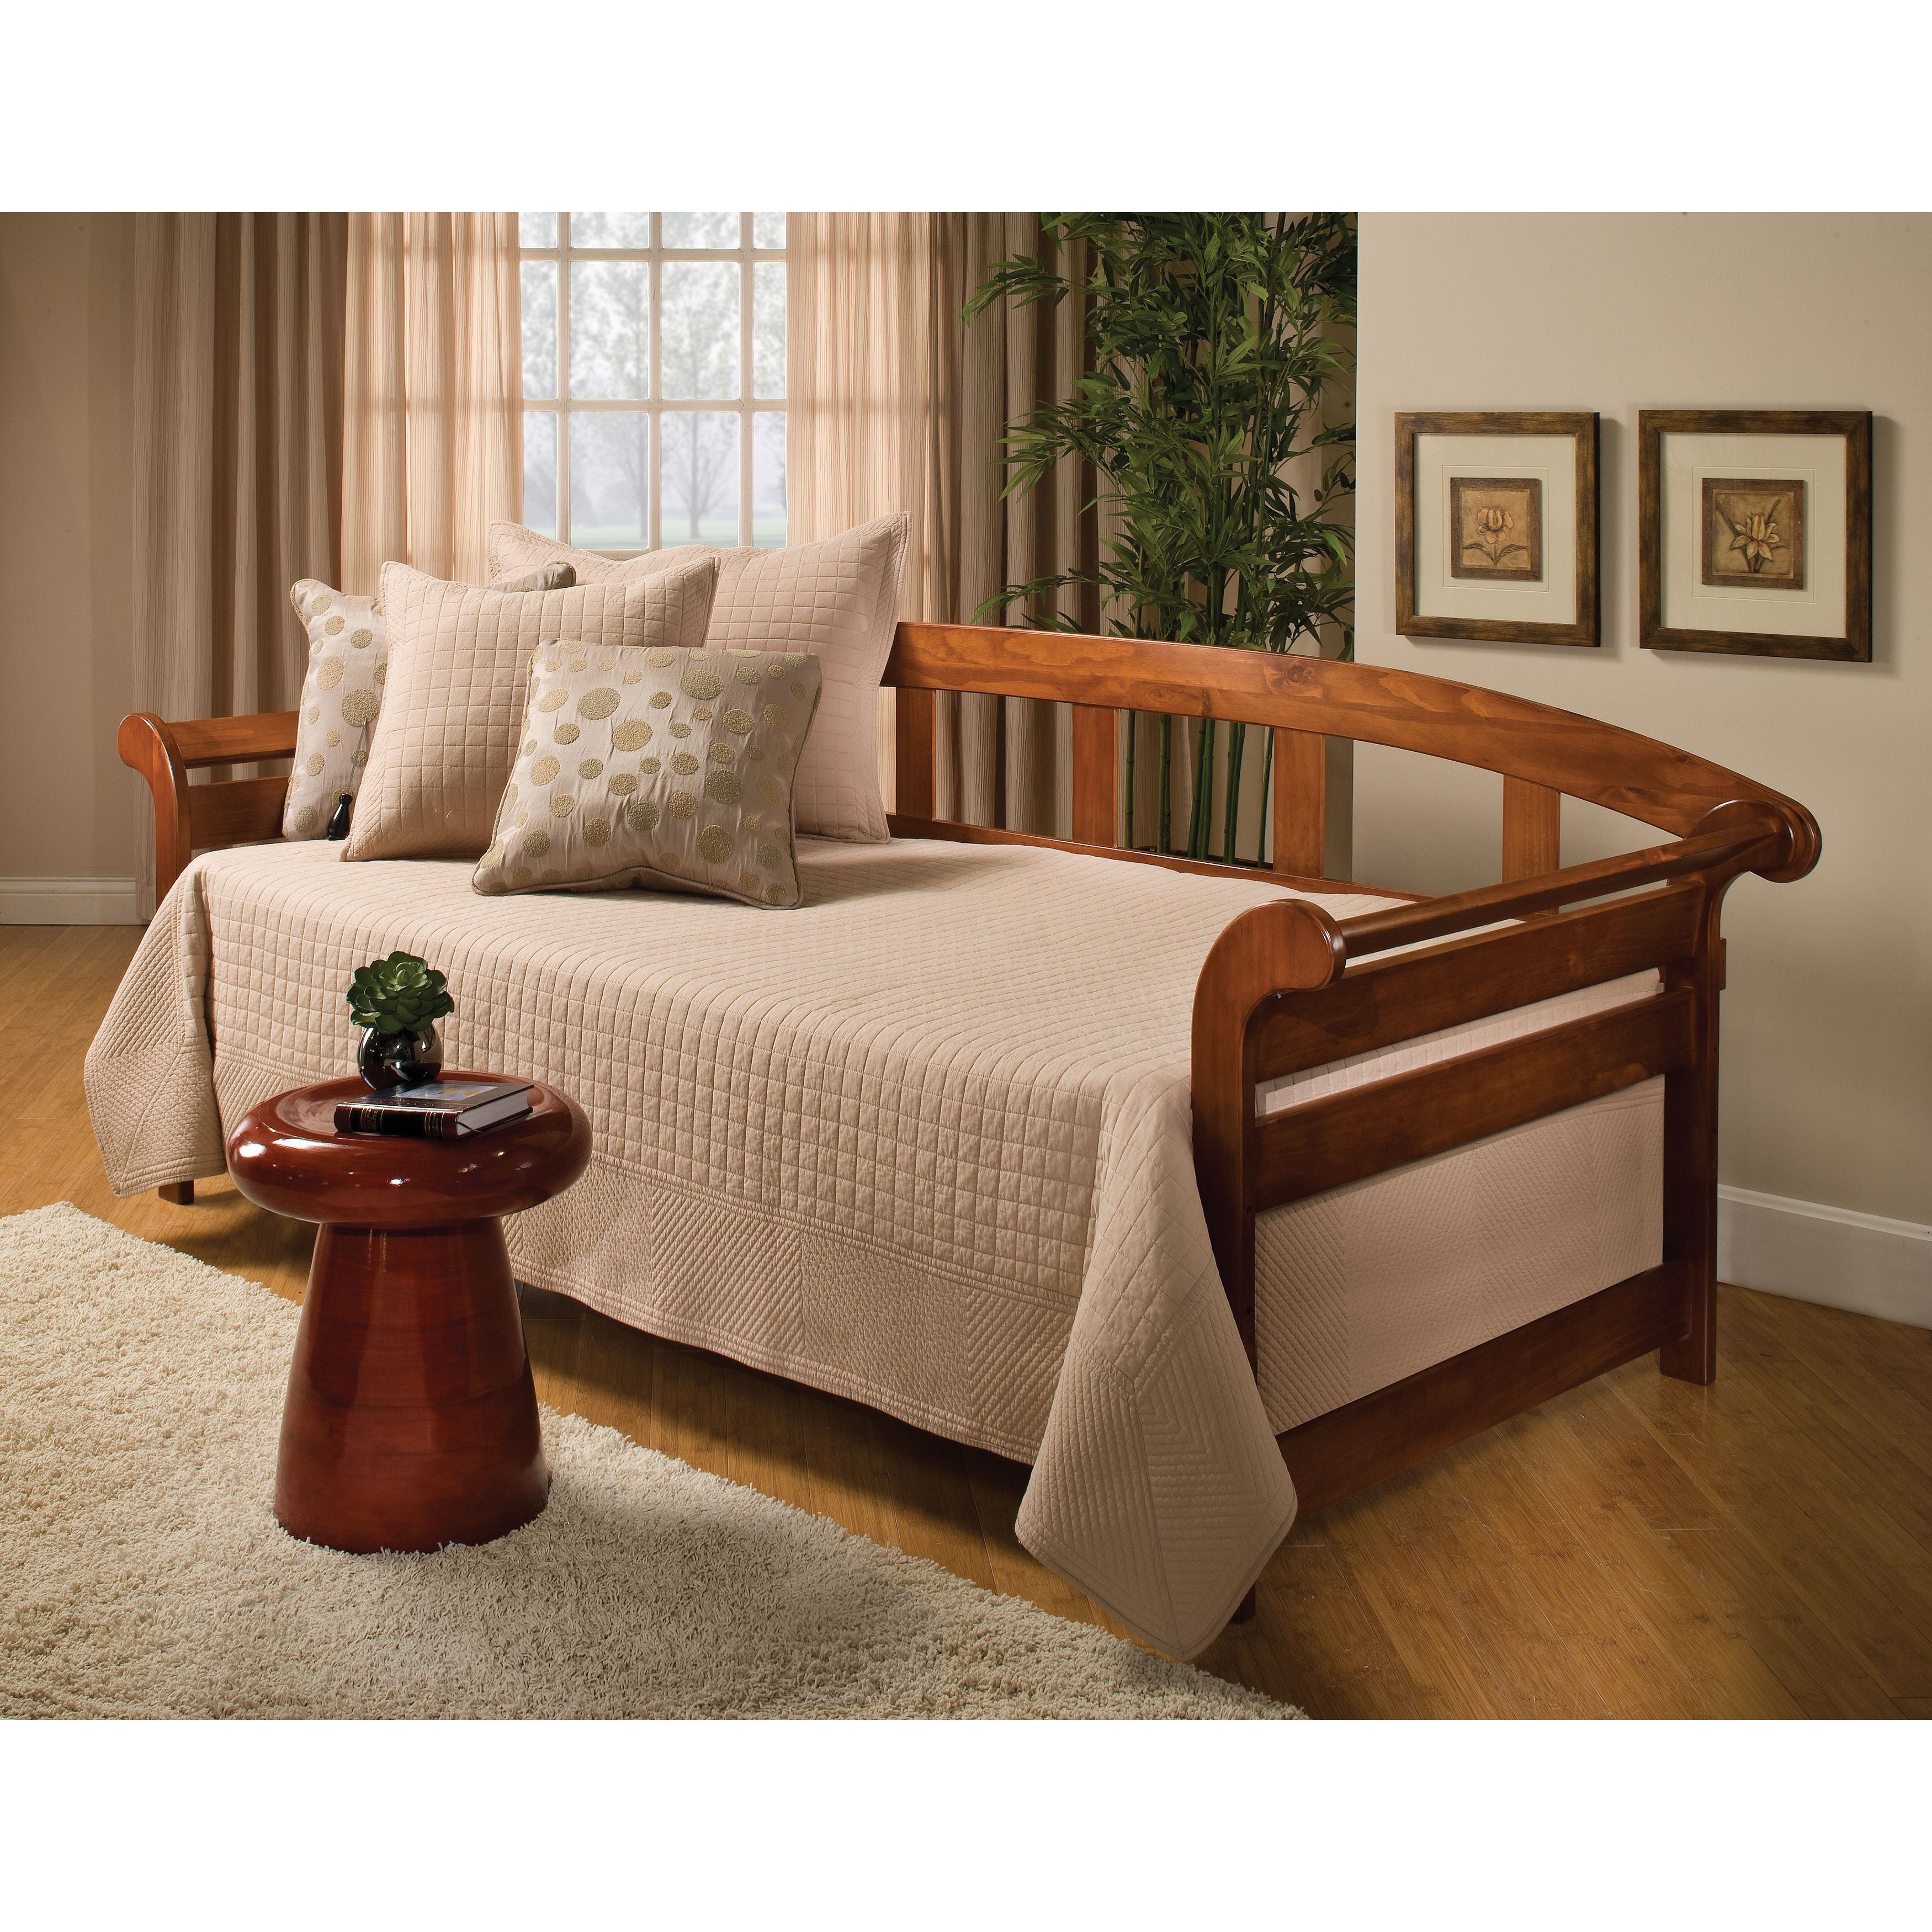 This Jason Daybed Is A Popular Wood Sleigh Bed Features